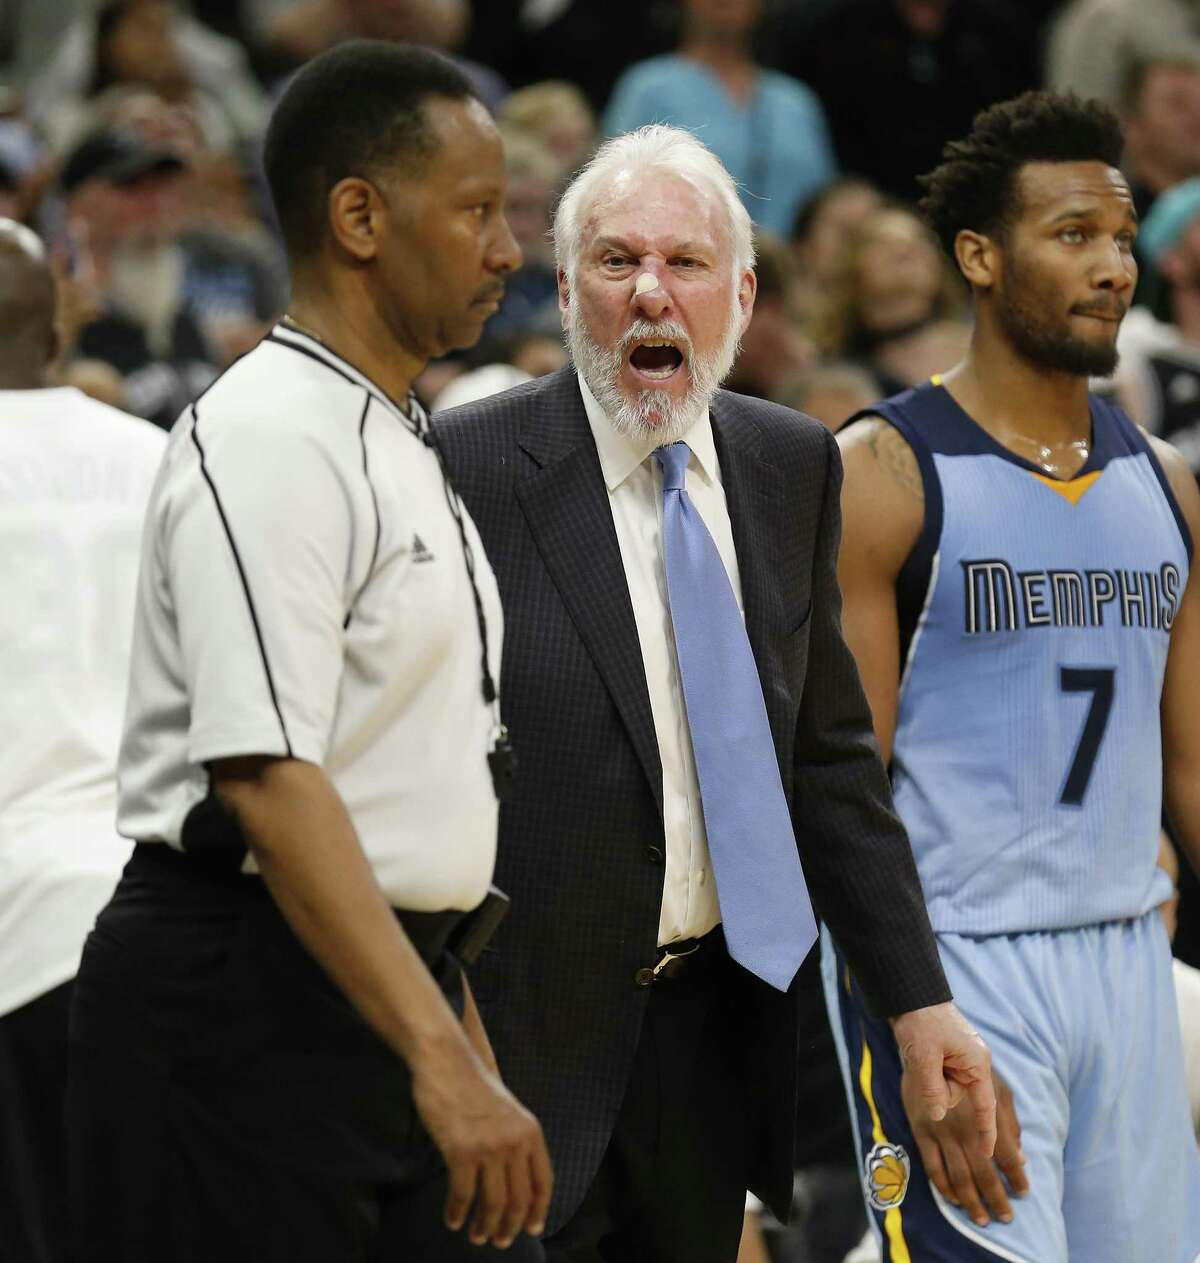 Spurs head coach Gregg Popovich reacts to Game official James Capers (19) during the Spurs game against the Memphis Grizzlies at the AT&T Center on Tuesday, Apr. 4, 2017. Spurs defeated the Grizzlies in overtime, 95-89.